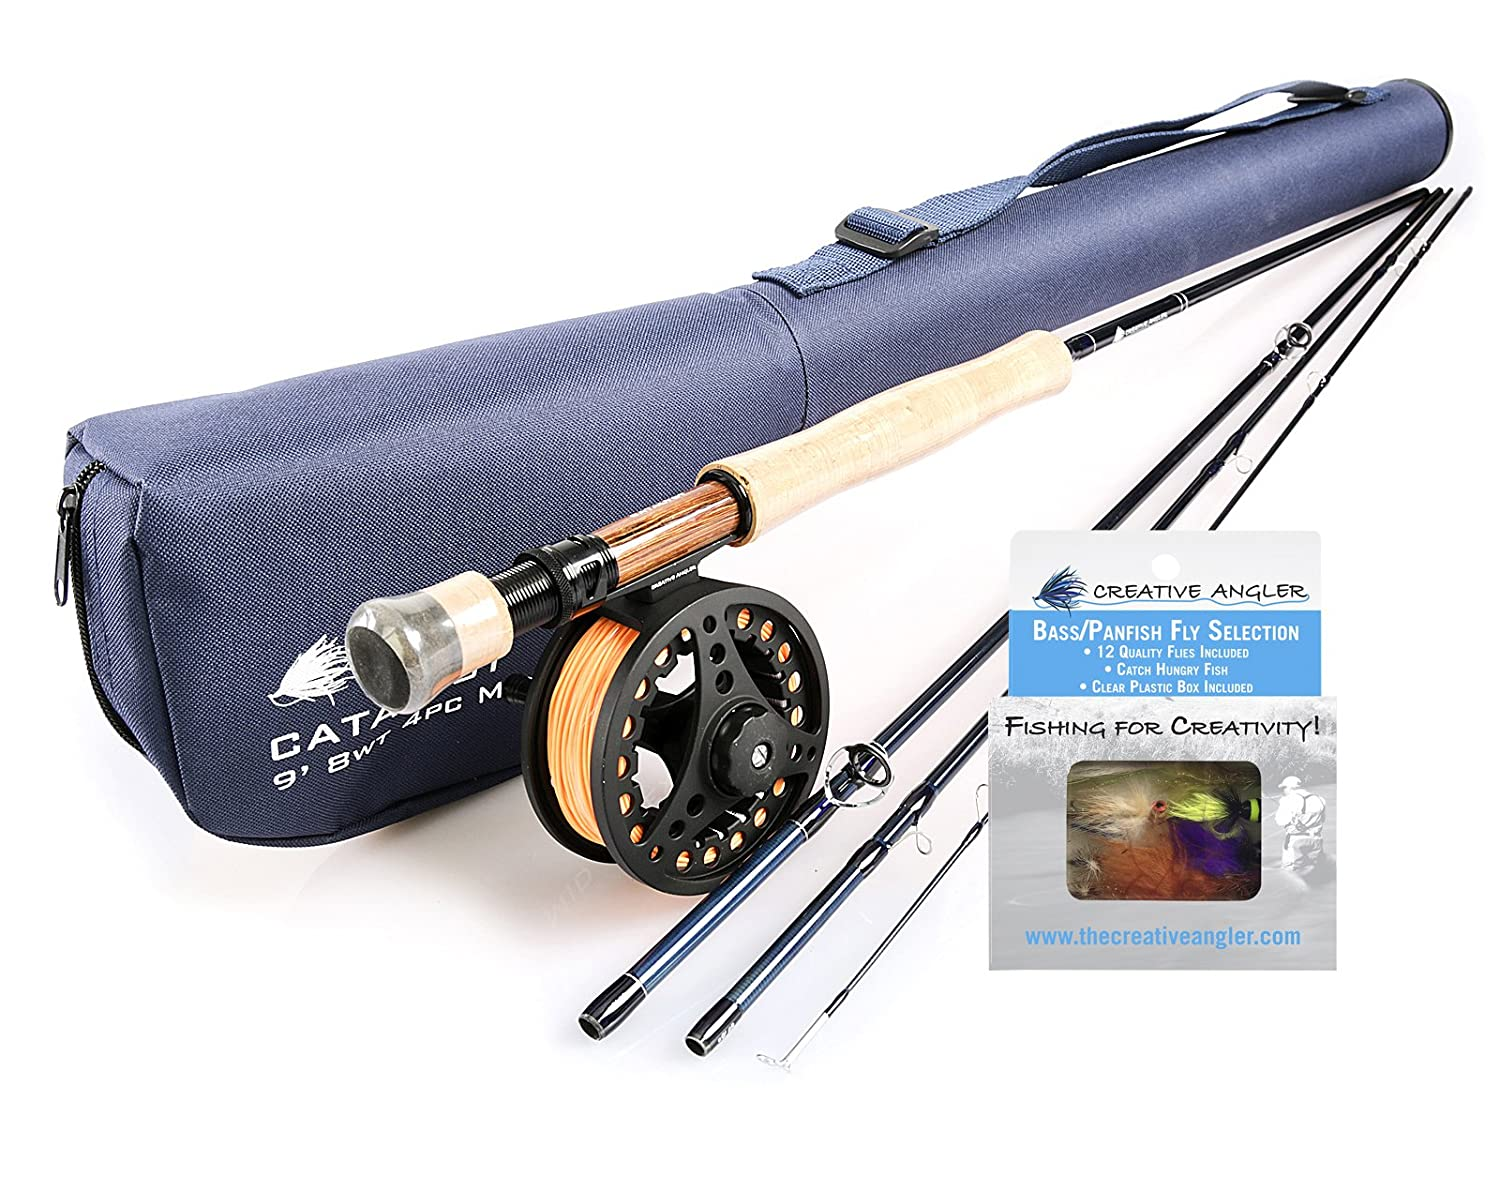 Catalyst Fly Rod and Fly Reel Combo 8wt with Bass Fly Selection for Fly Fishing   B01M6UZ3CI